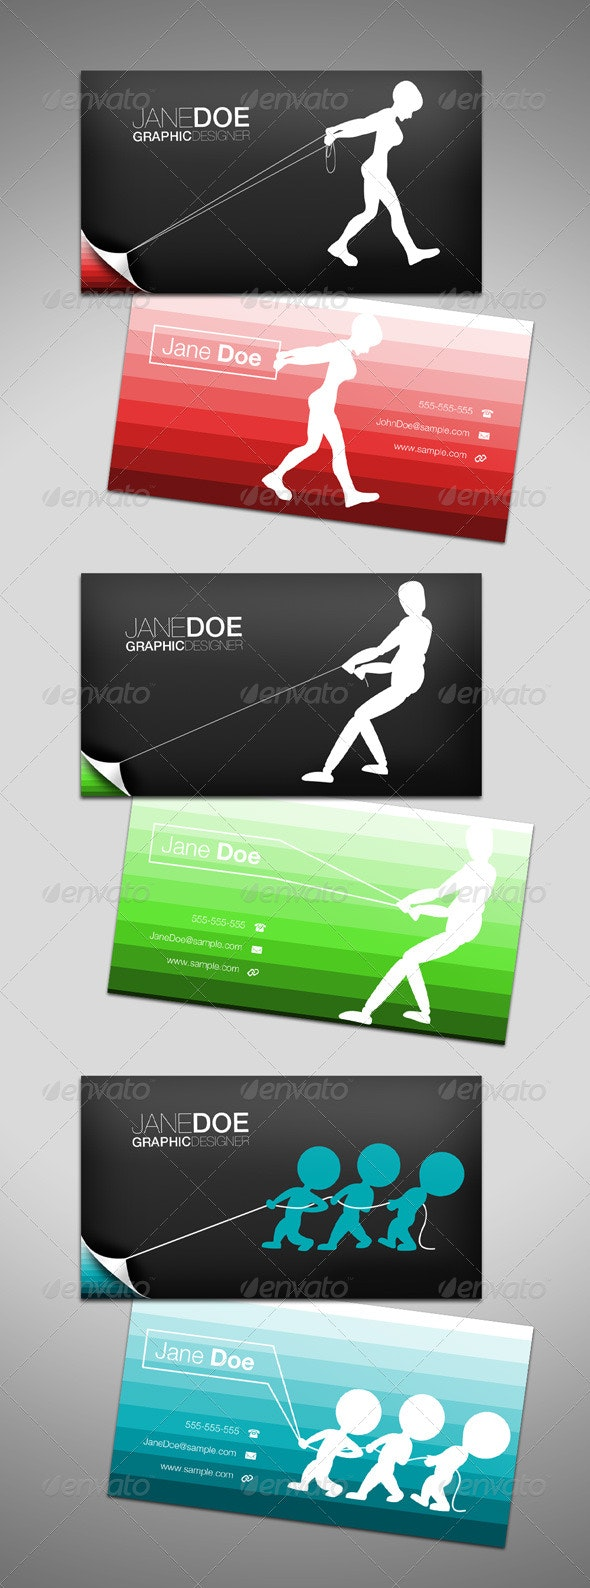 Business Cards - Pull (3 Individual Designs)  - Creative Business Cards